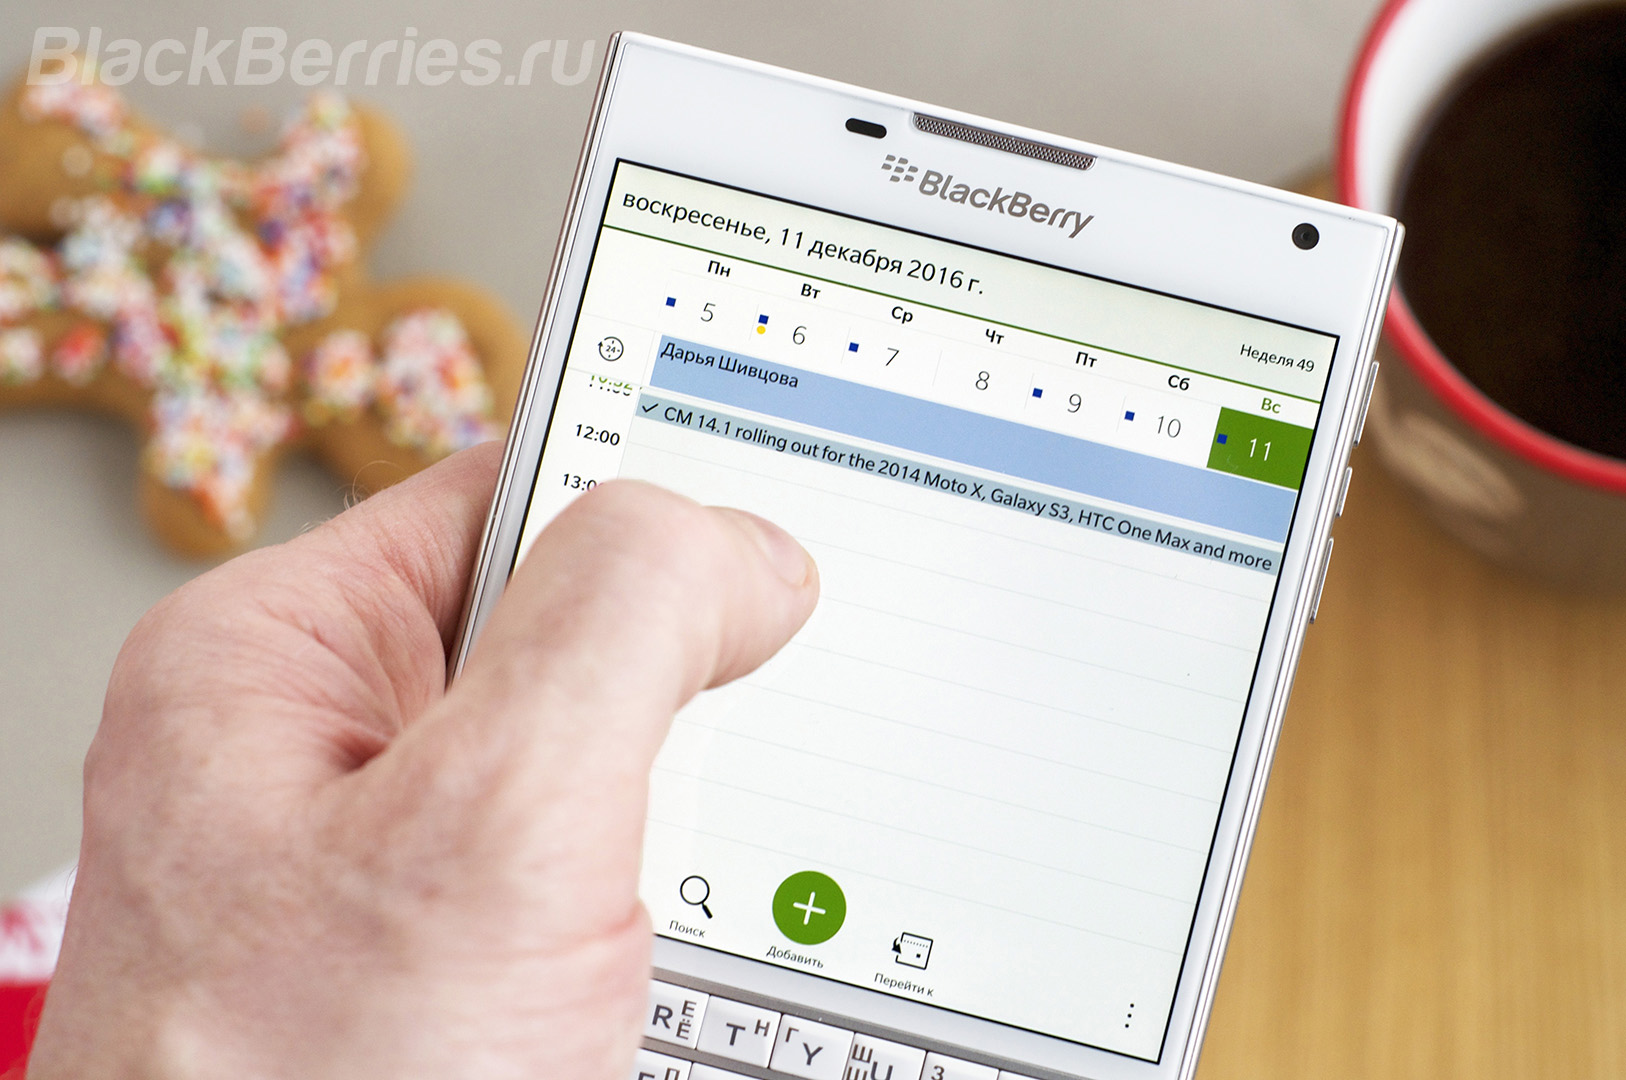 blackberry-remember-7